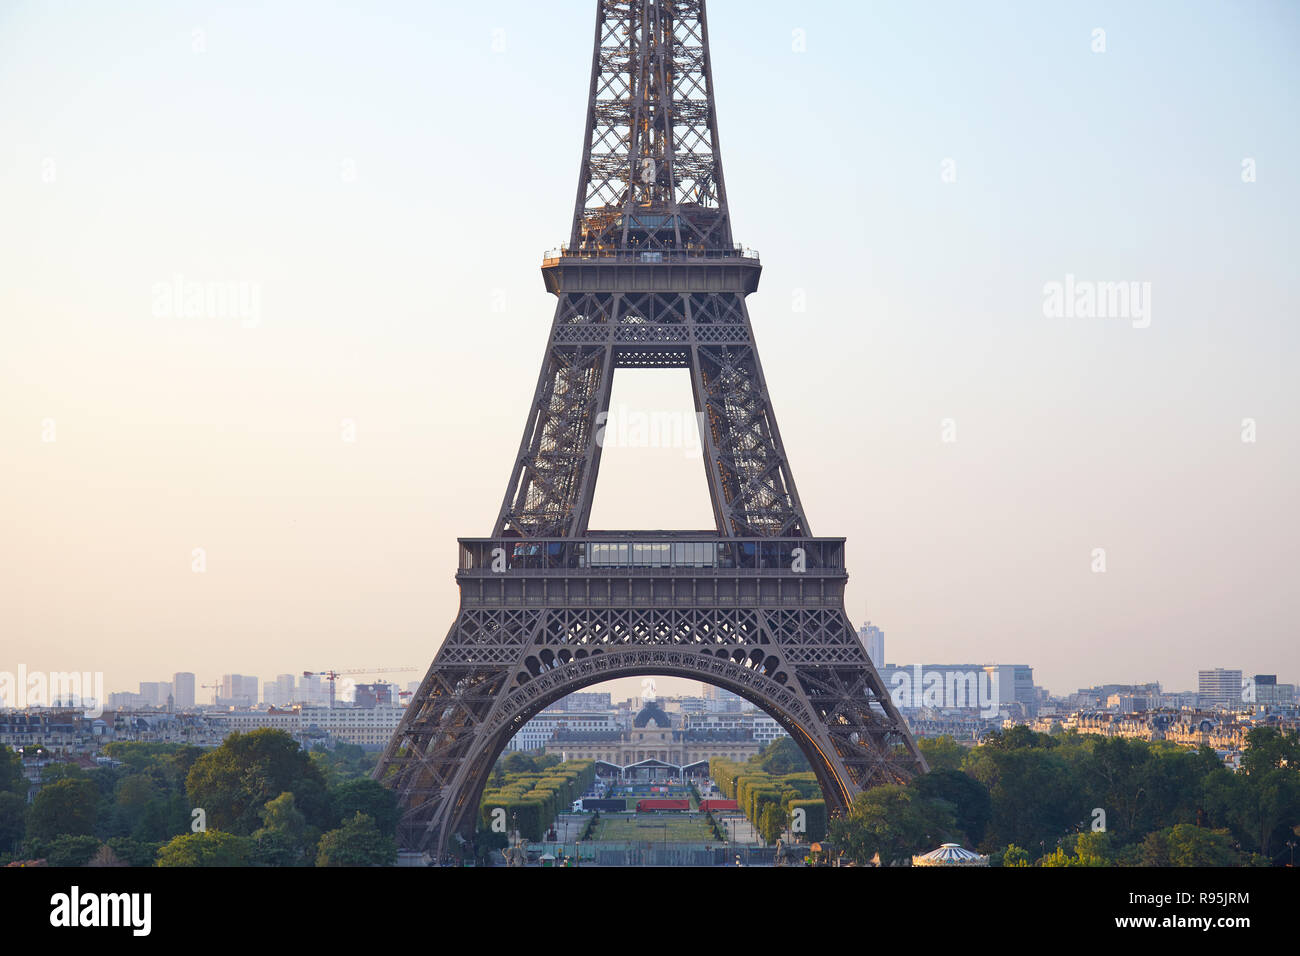 Eiffel tower detail from Trocadero in a clear summer morning in Paris, France - Stock Image